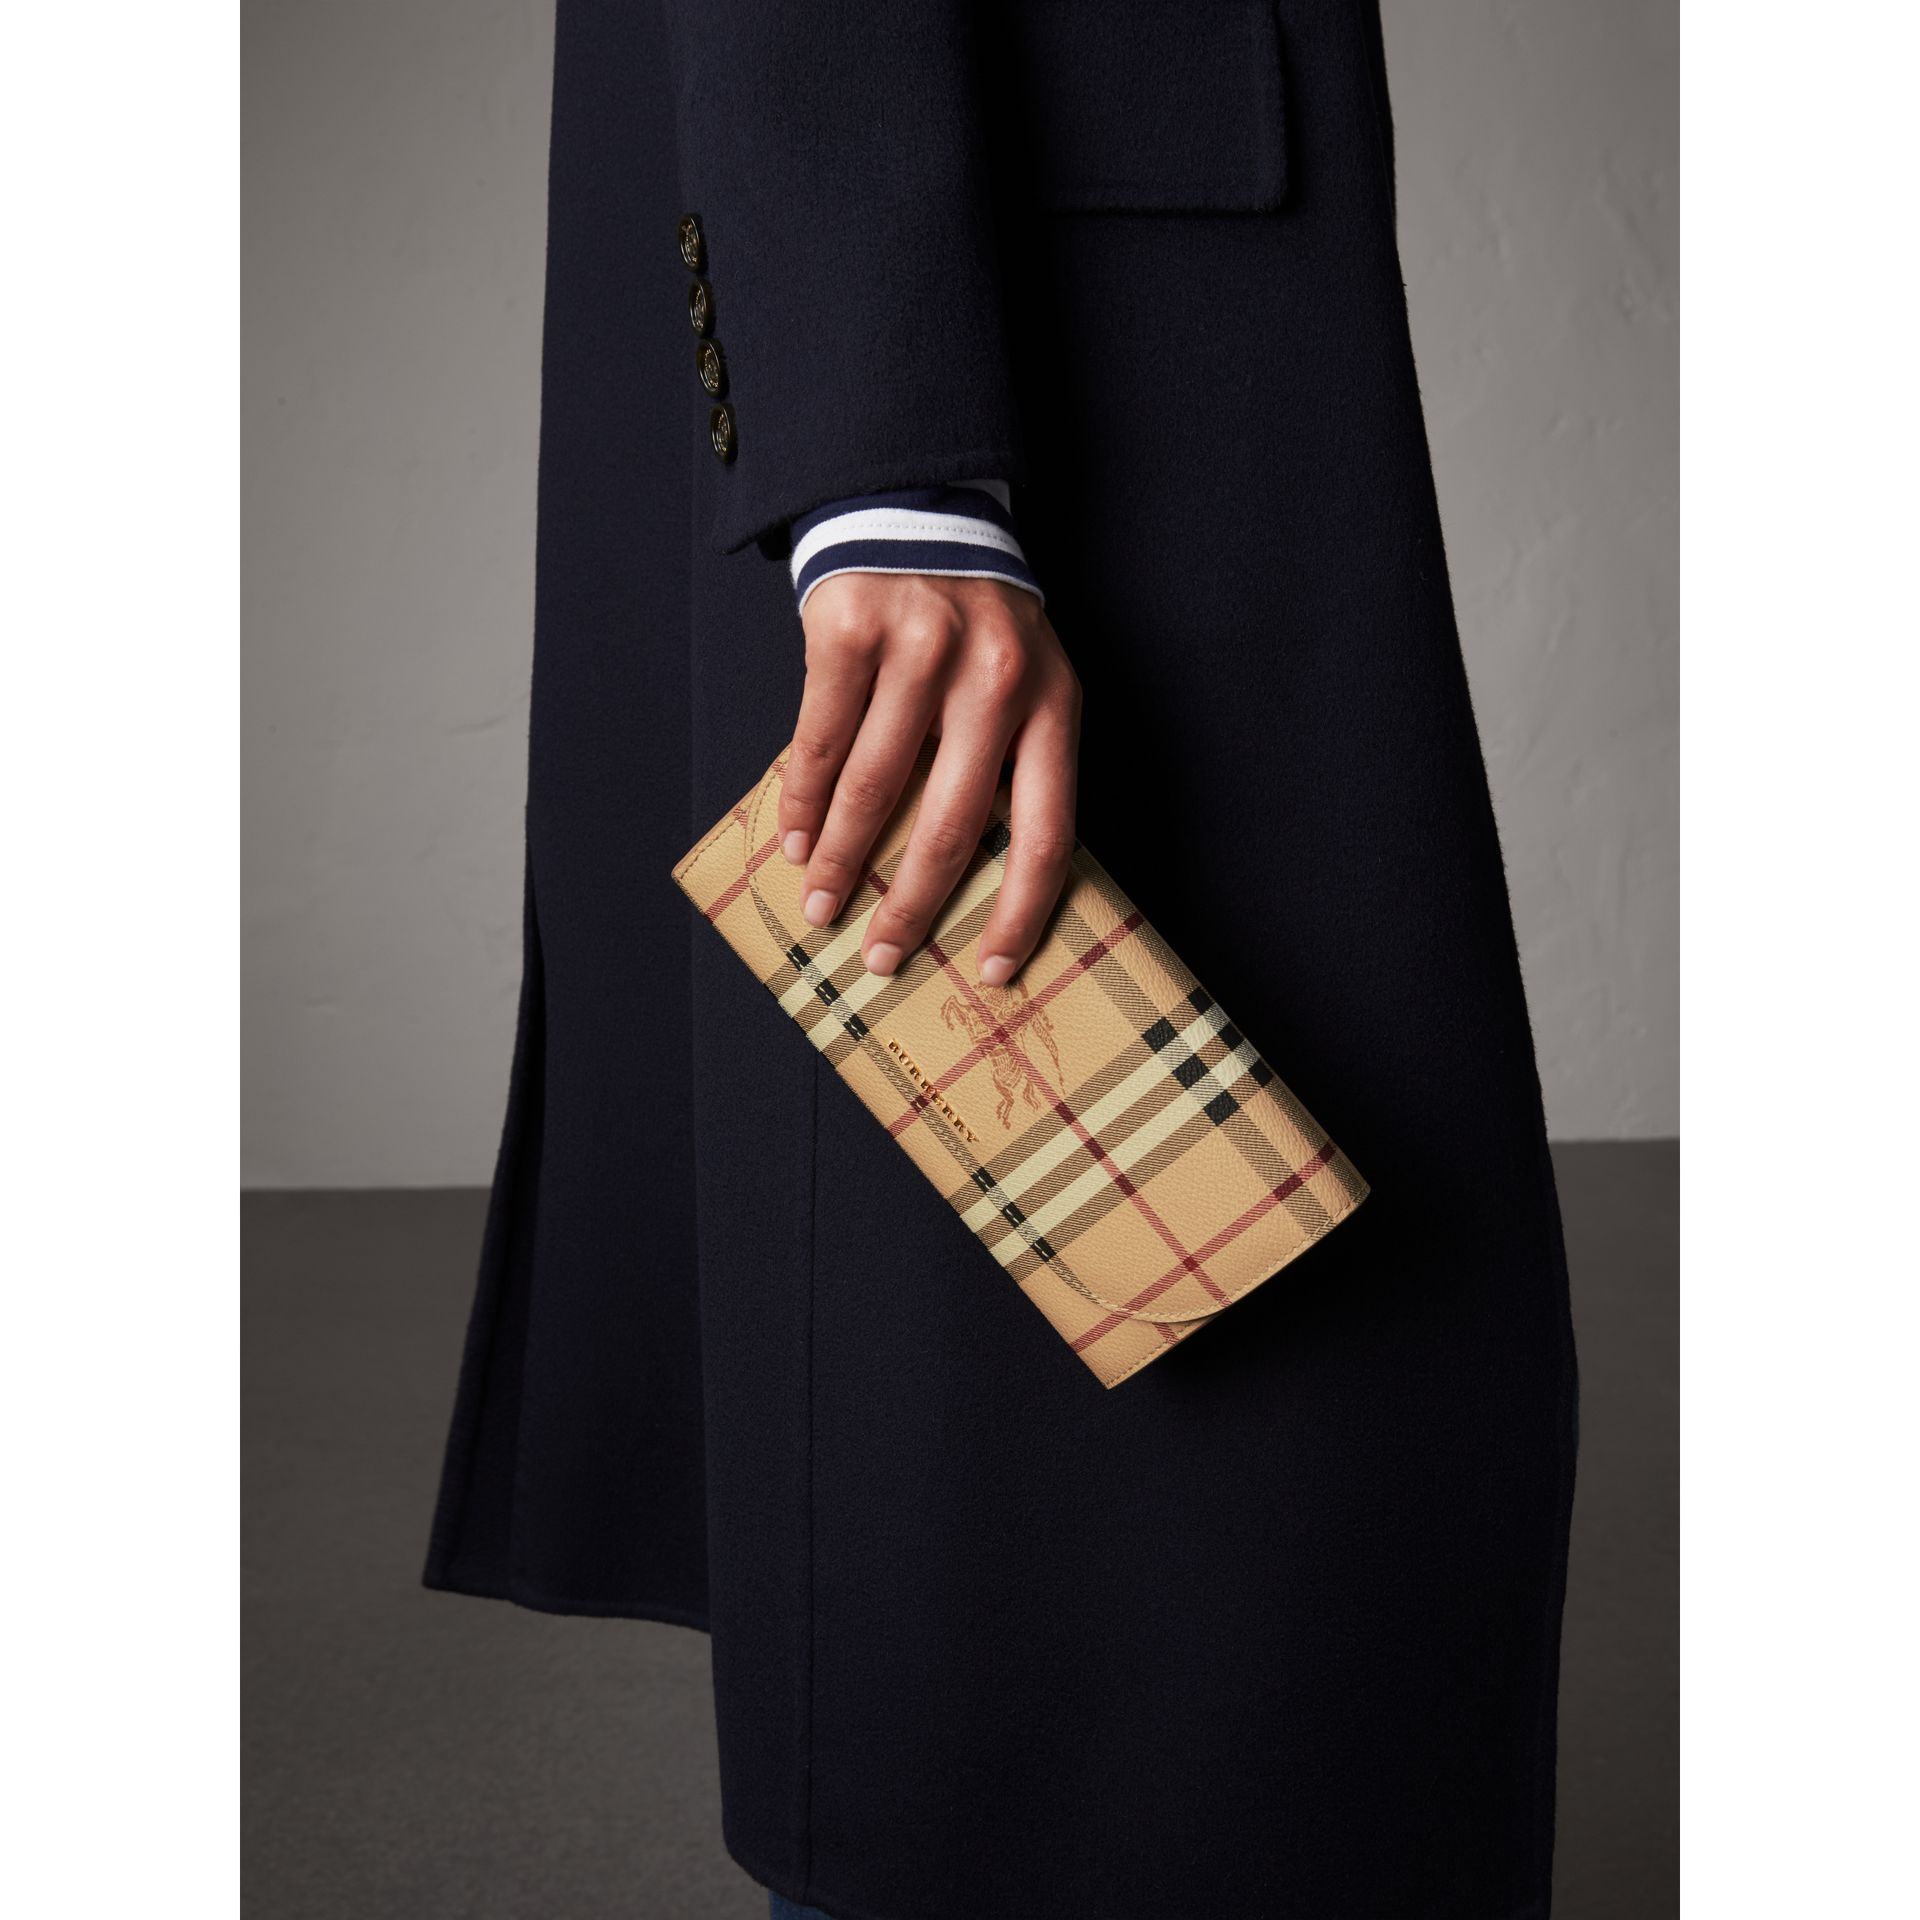 Leather Trim Haymarket Check Wallet with Chain in Mid Camel - Women | Burberry - gallery image 2